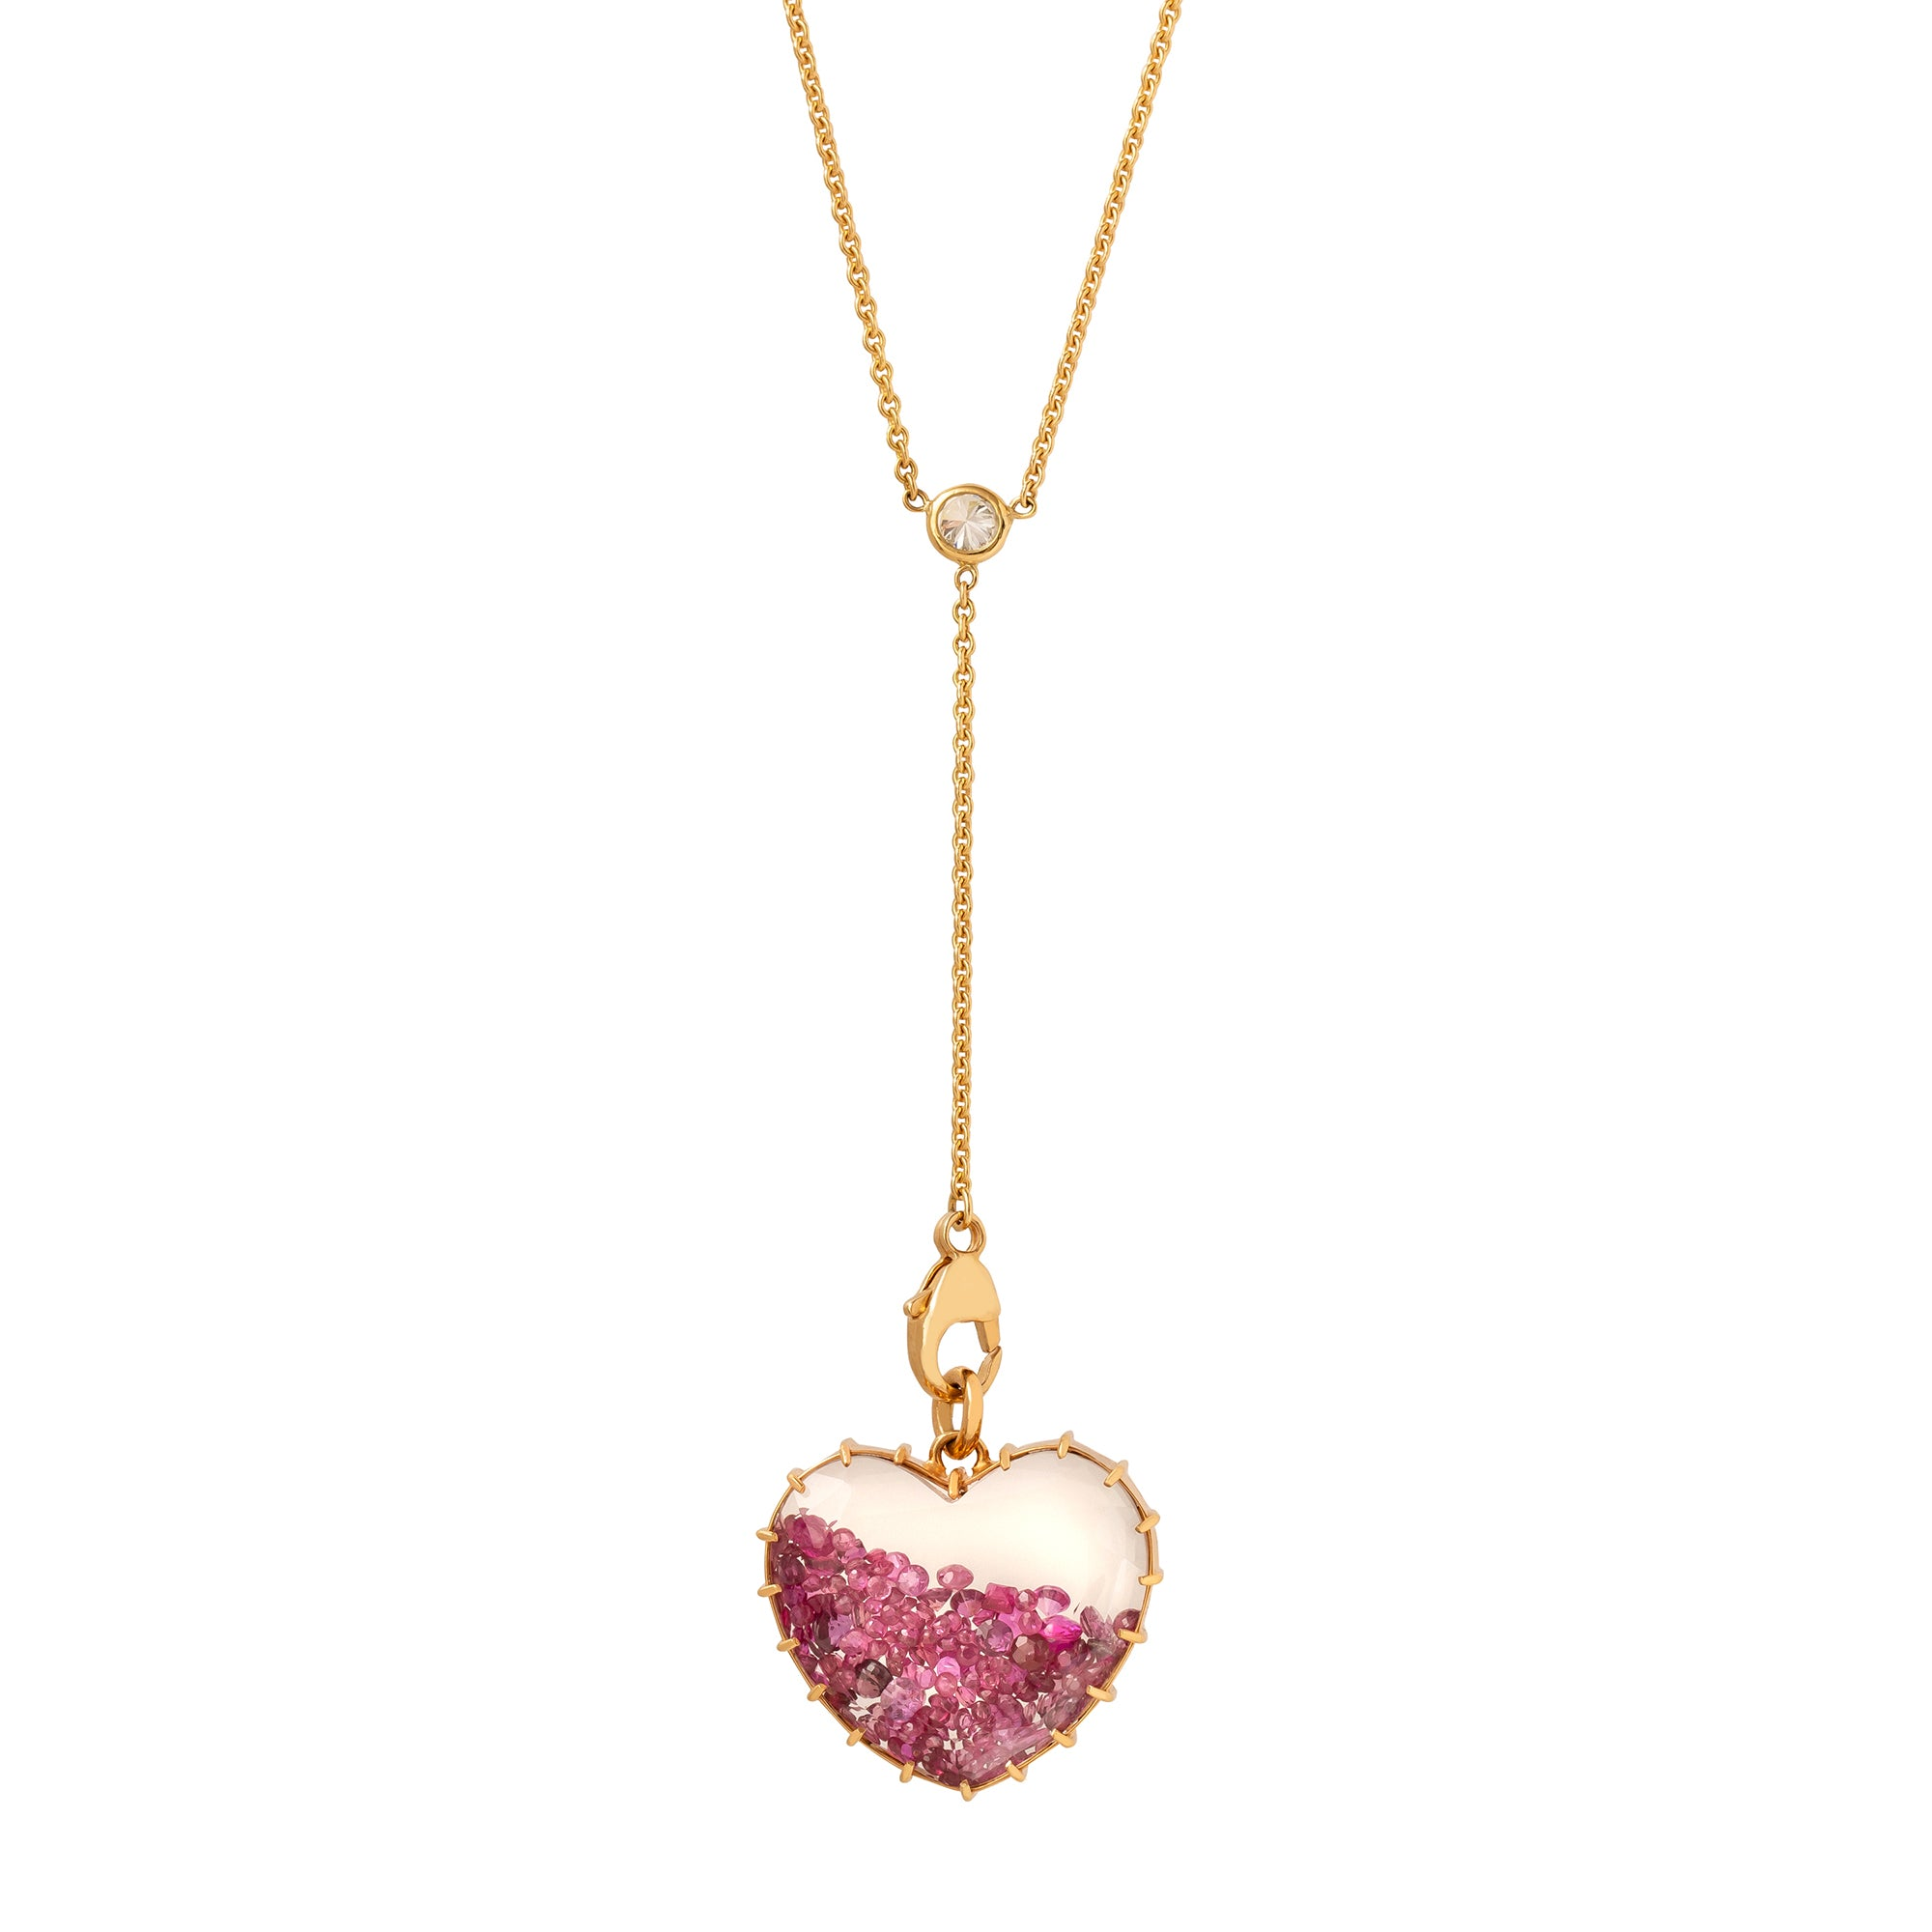 Renee Lewis Heart Shake Necklace - Ruby - Necklaces - Broken English Jewelry